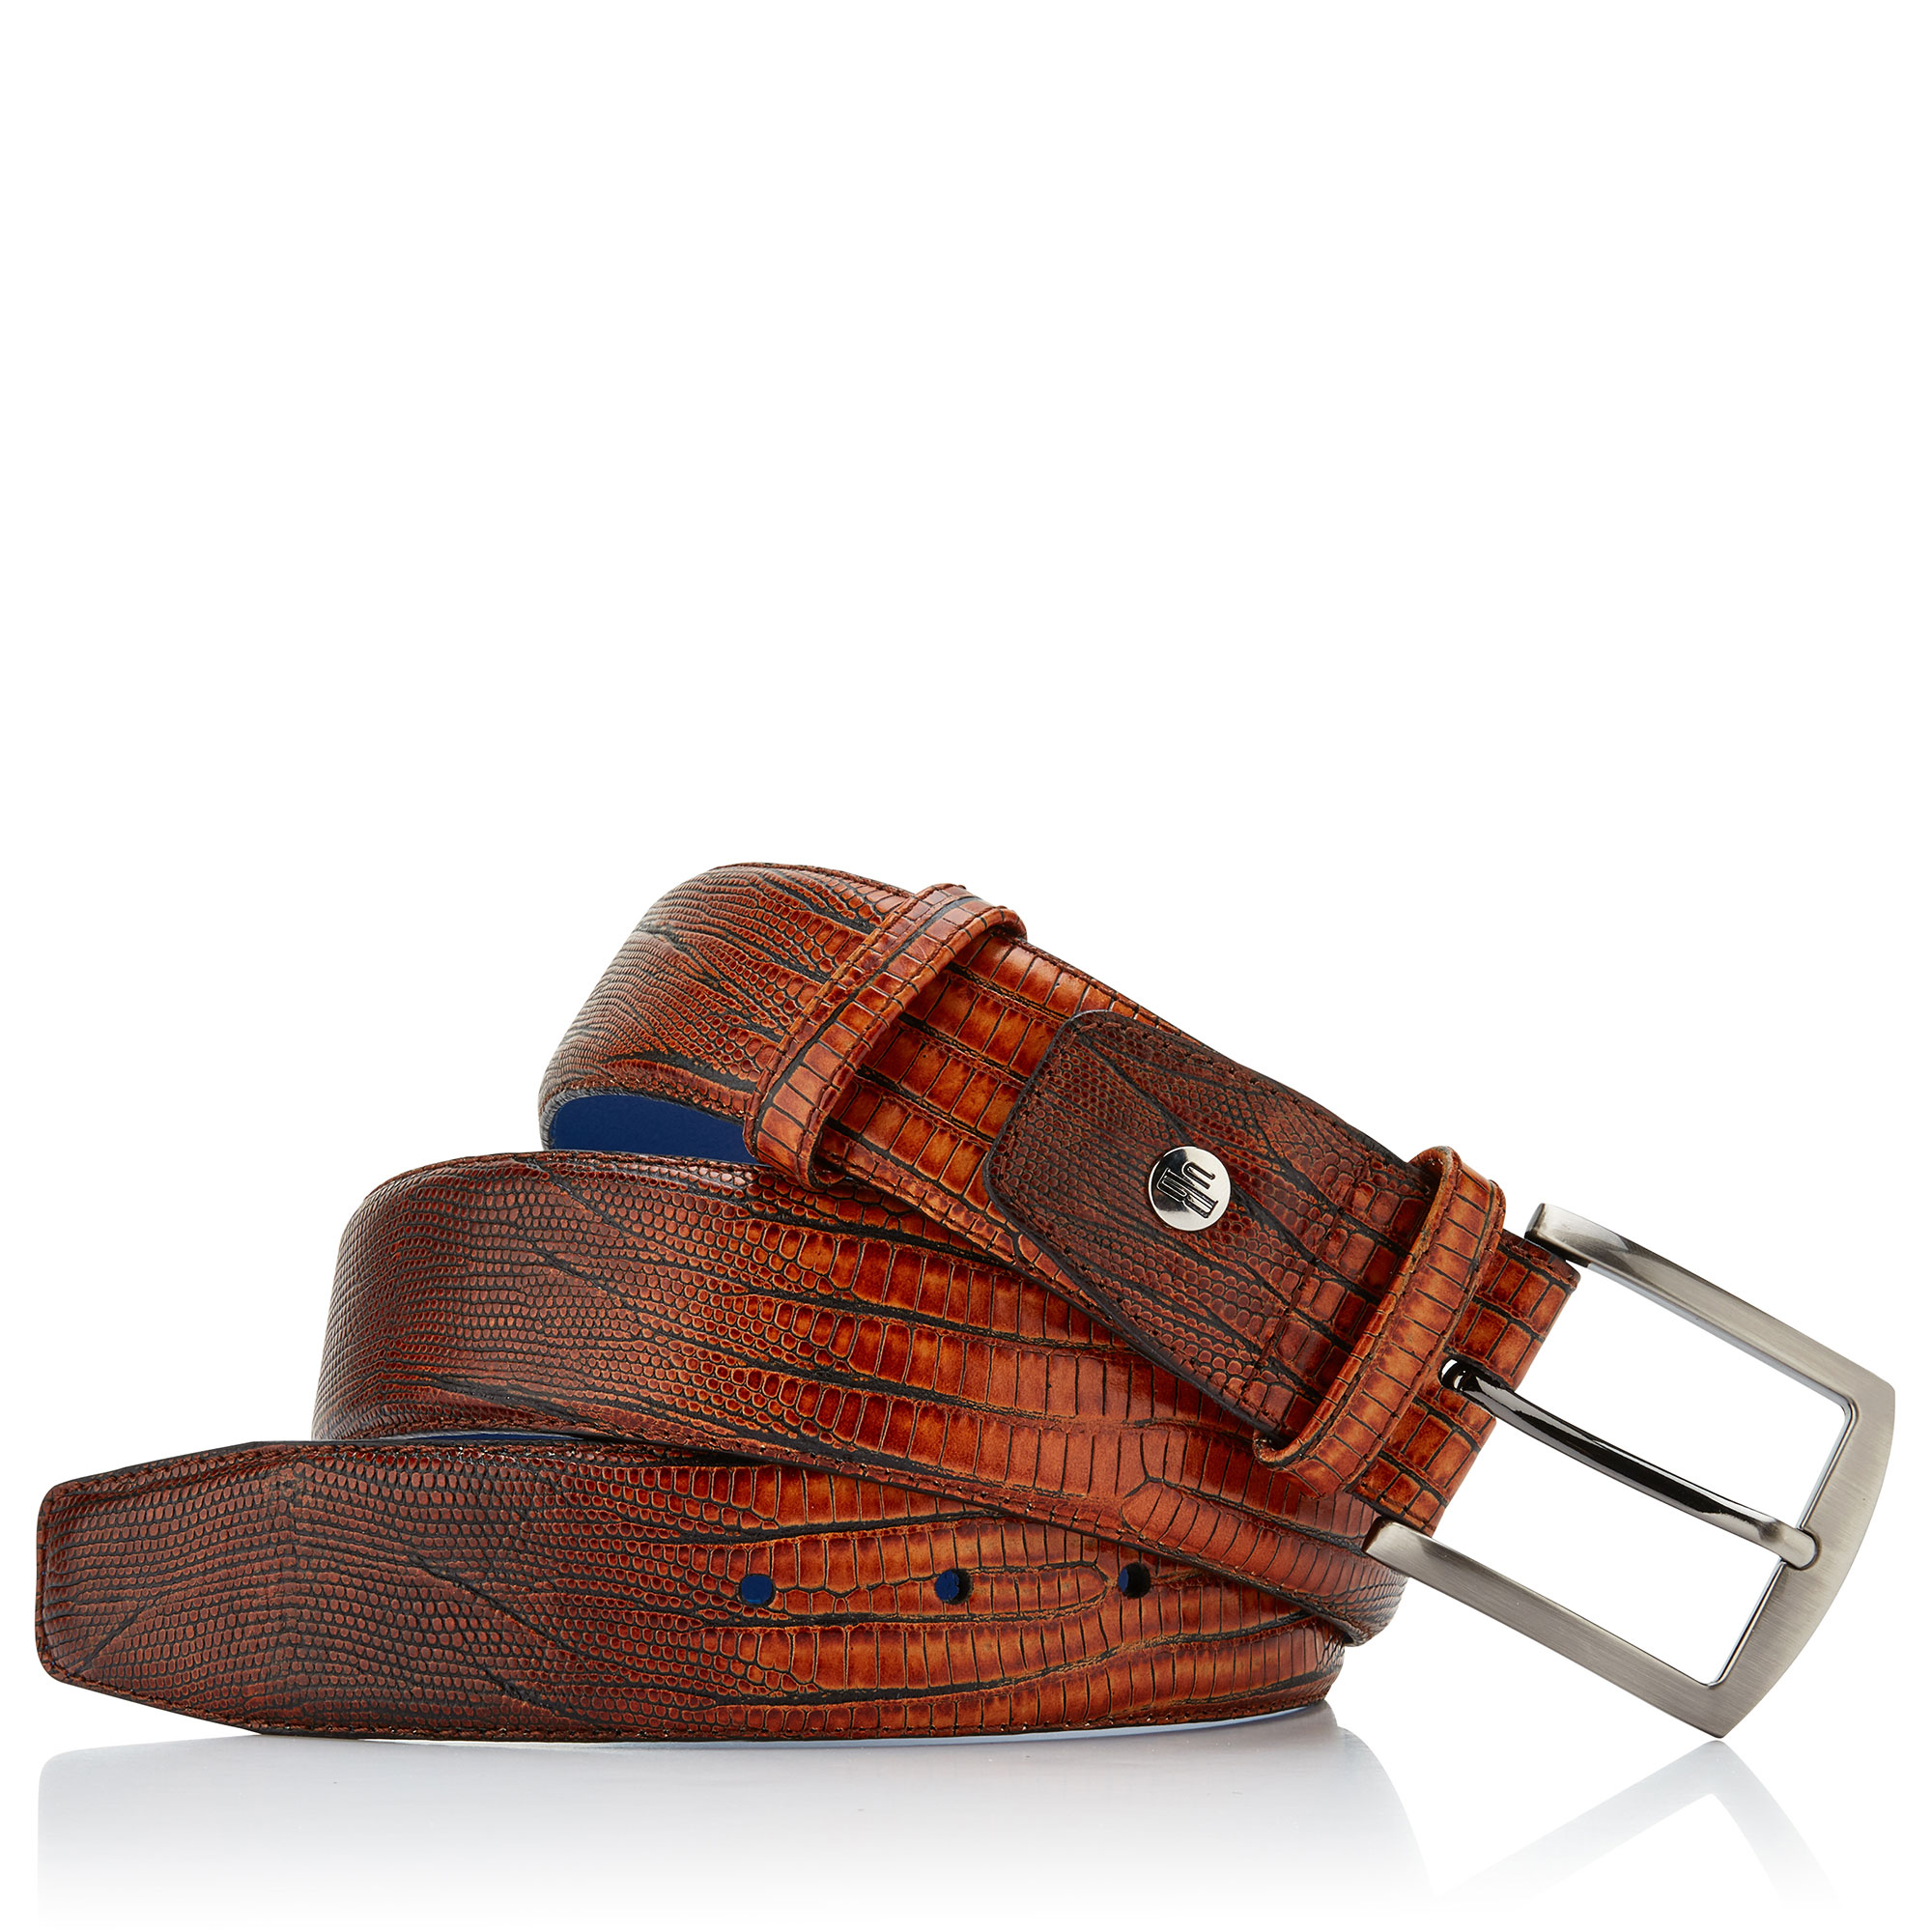 75138/10 - Floris van Bommel cognac lizard print men's belt